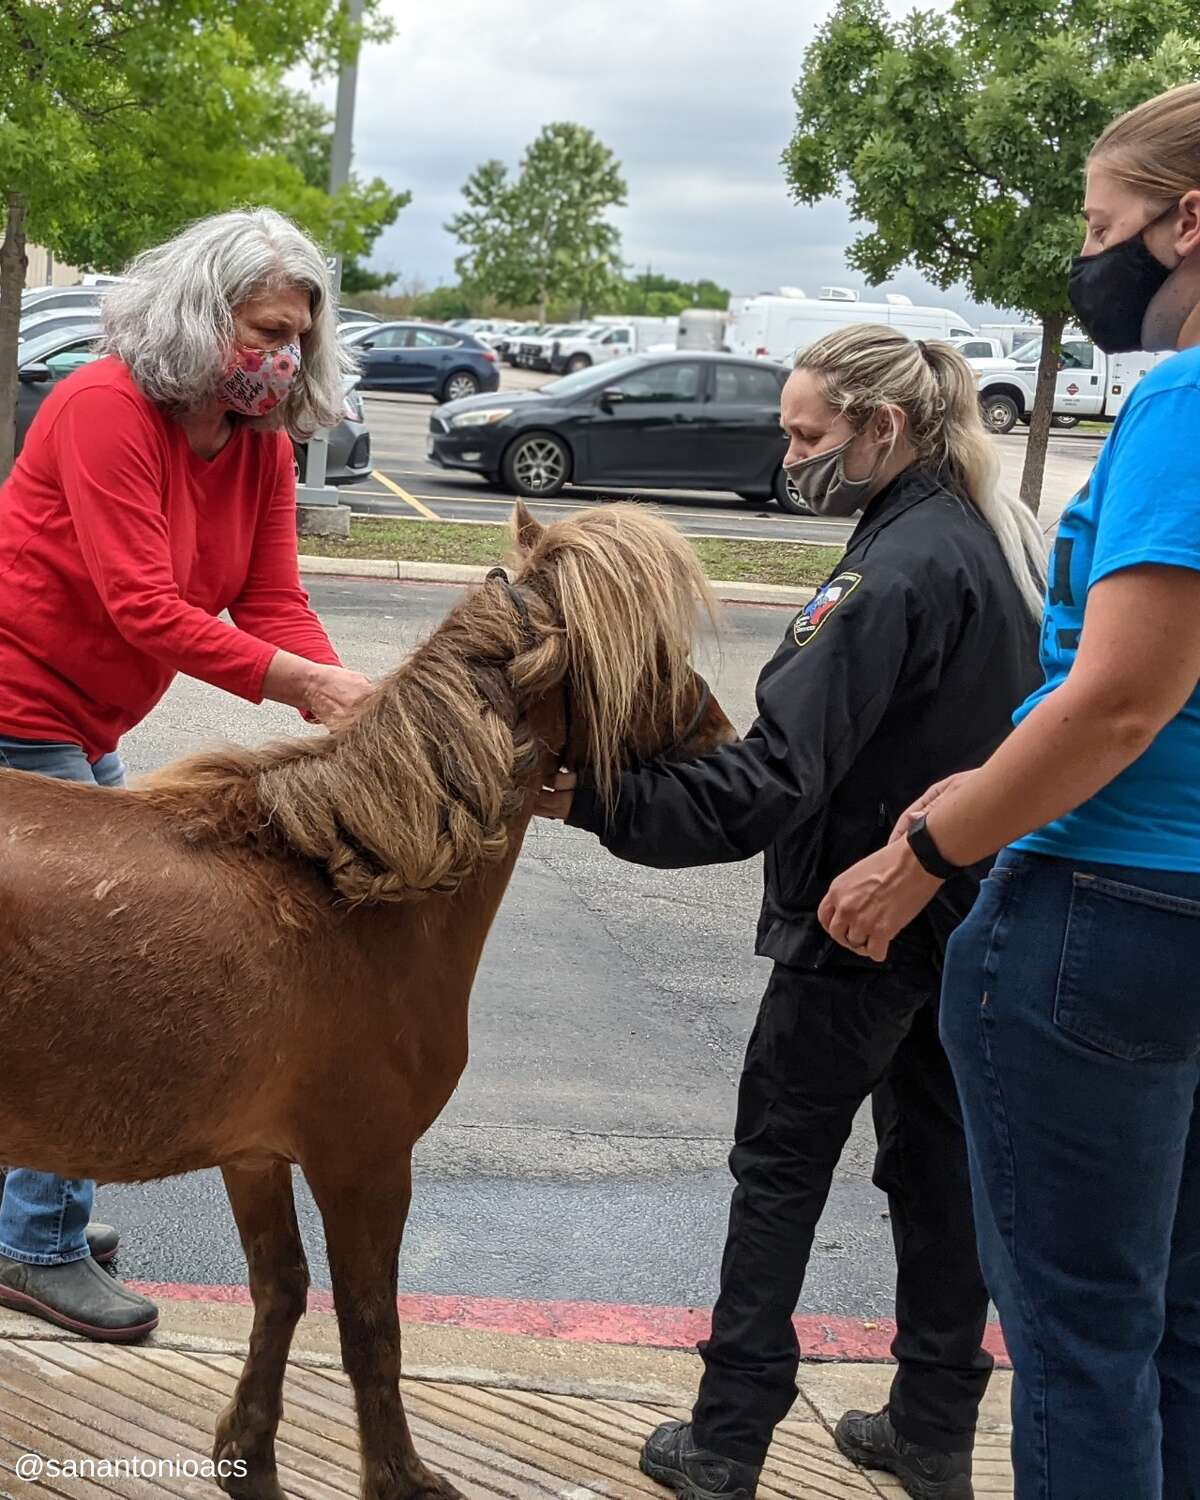 On Monday, ACS posted on its Facebook page that its offers recused a pony named Churro after a pack of dogs injured him.